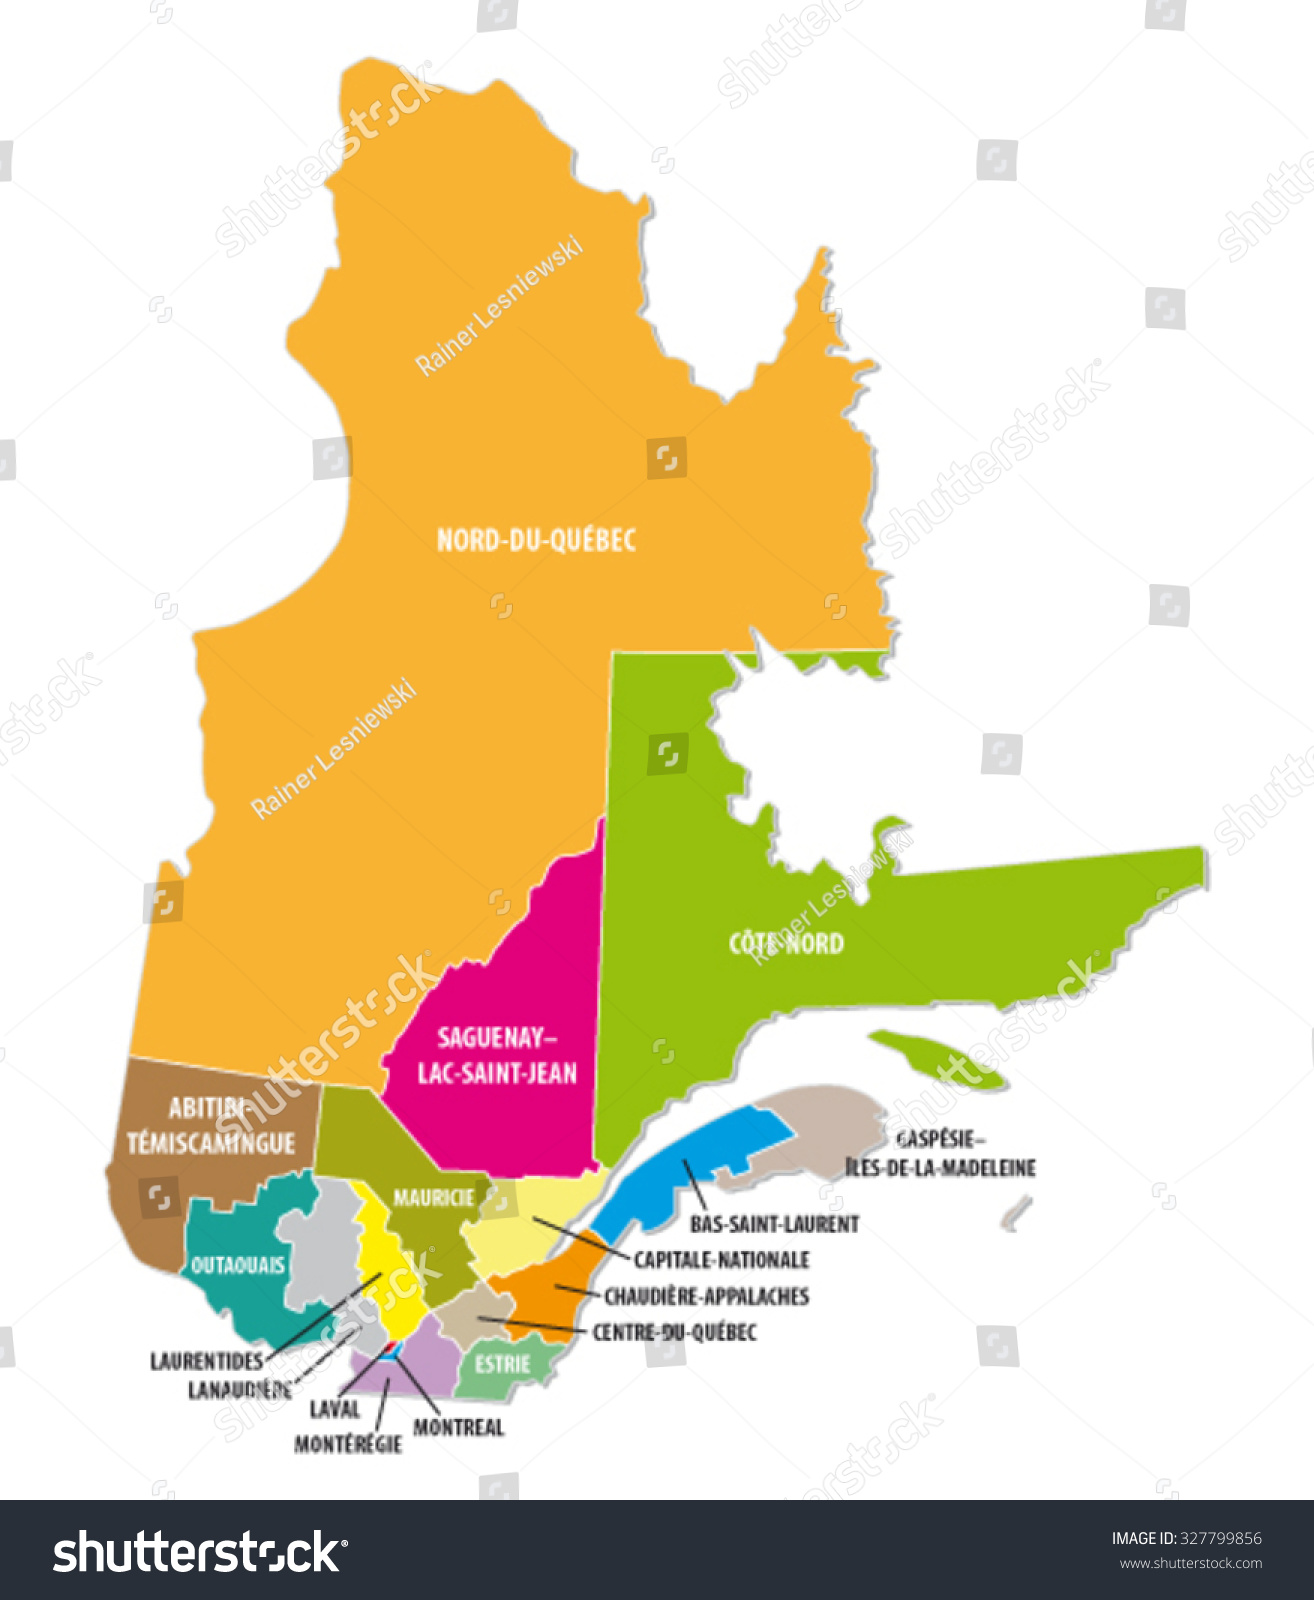 Quebec colorful administrative map vectores en stock 327799856 quebec colorful administrative map gumiabroncs Image collections